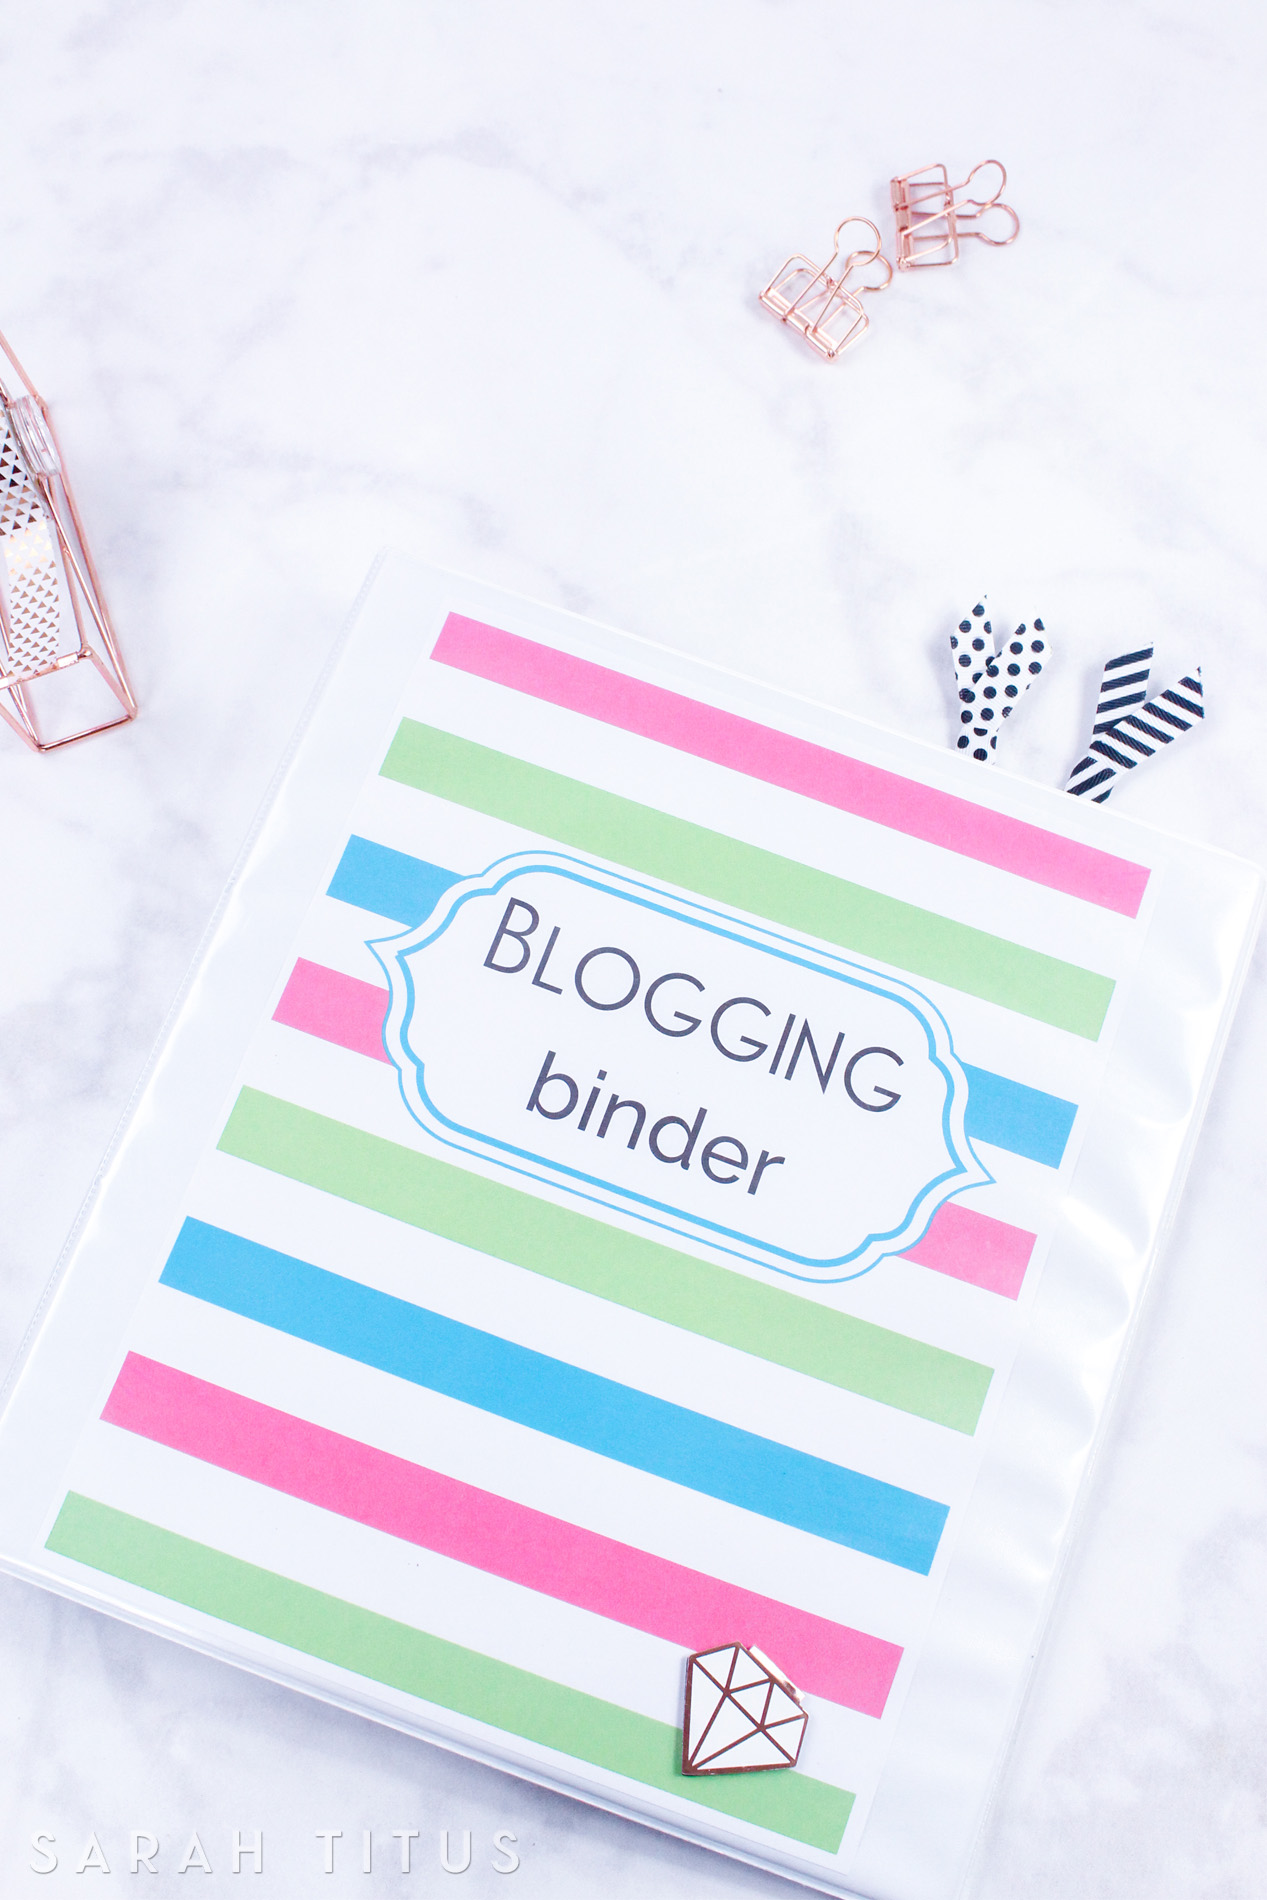 I've used many blog planners, but none of them really did what I wanted them to do. That is, until I created my OWN. At 180+ pages,  this is the one blogging binder you need!